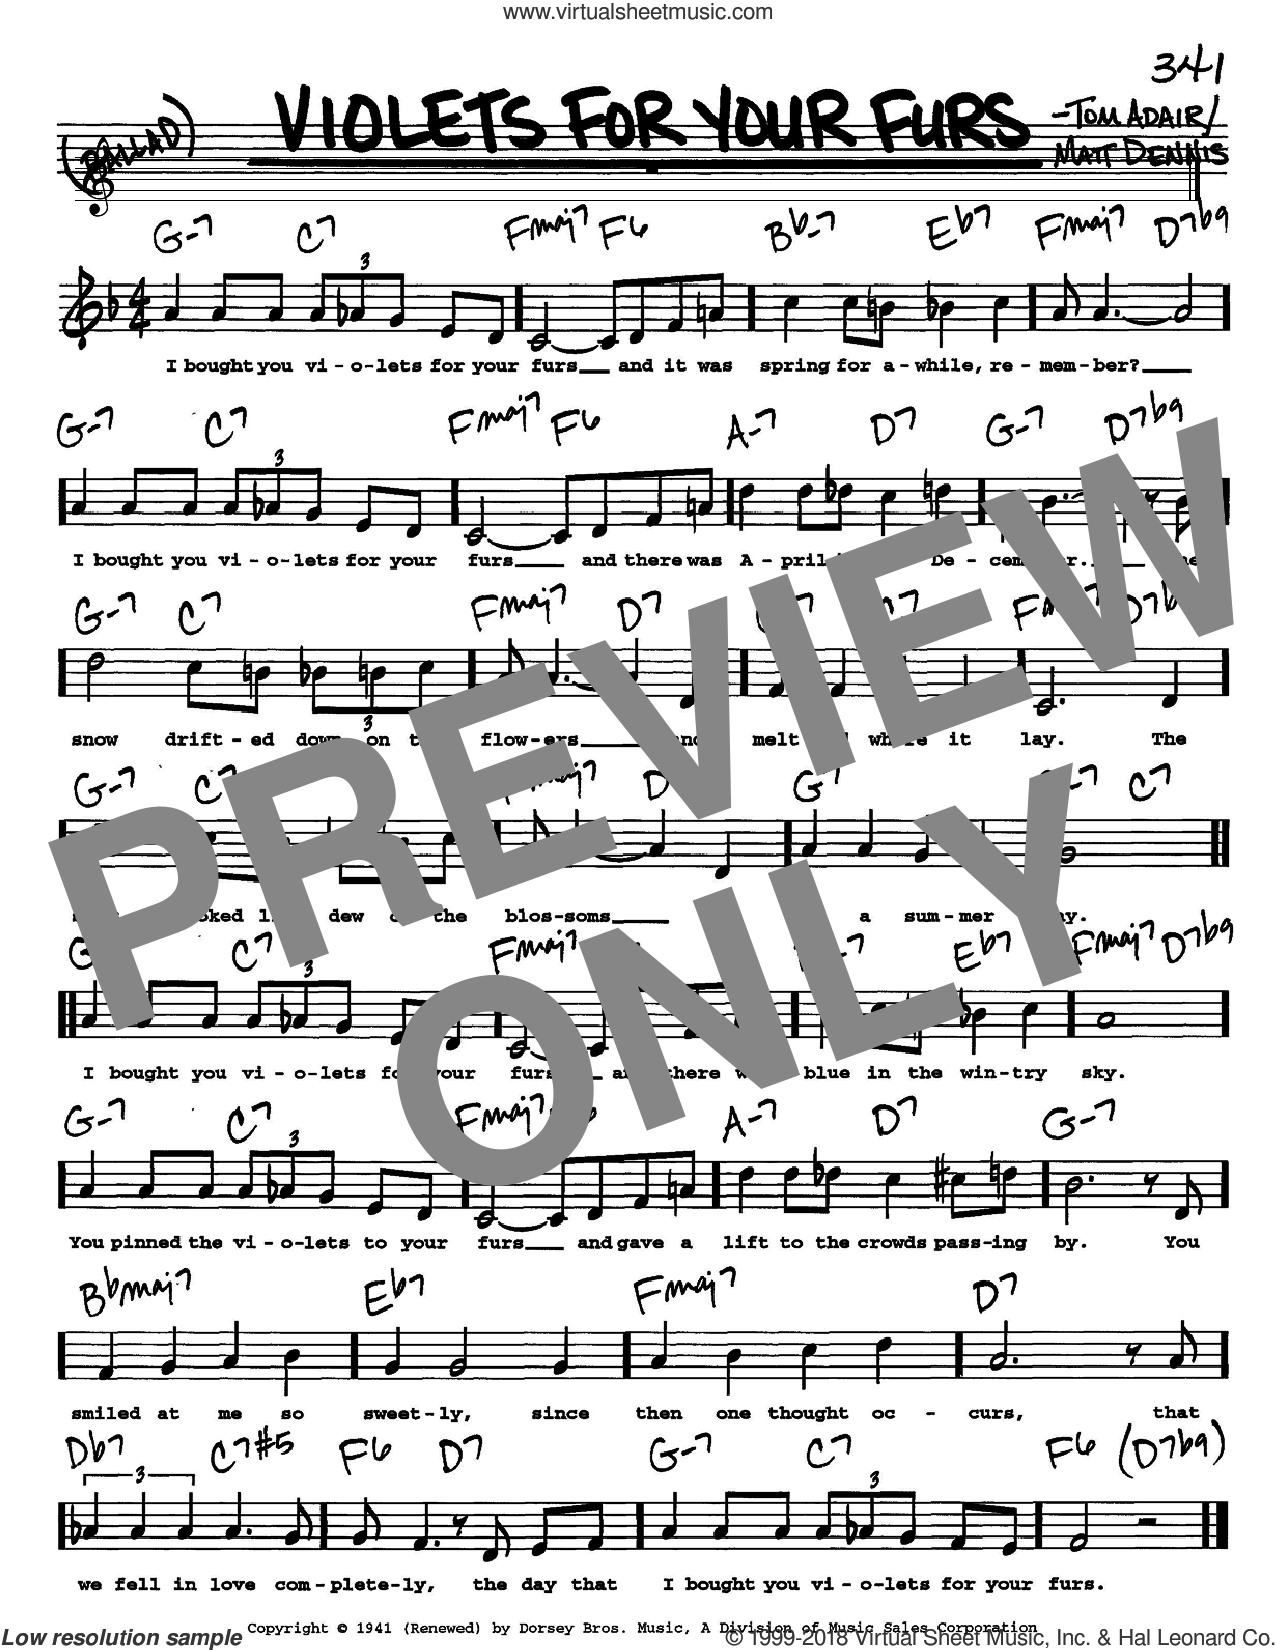 Violets For Your Furs sheet music for voice and other instruments (Vocal Volume 2) by Frank Sinatra, Matt Dennis and Tom Adair. Score Image Preview.